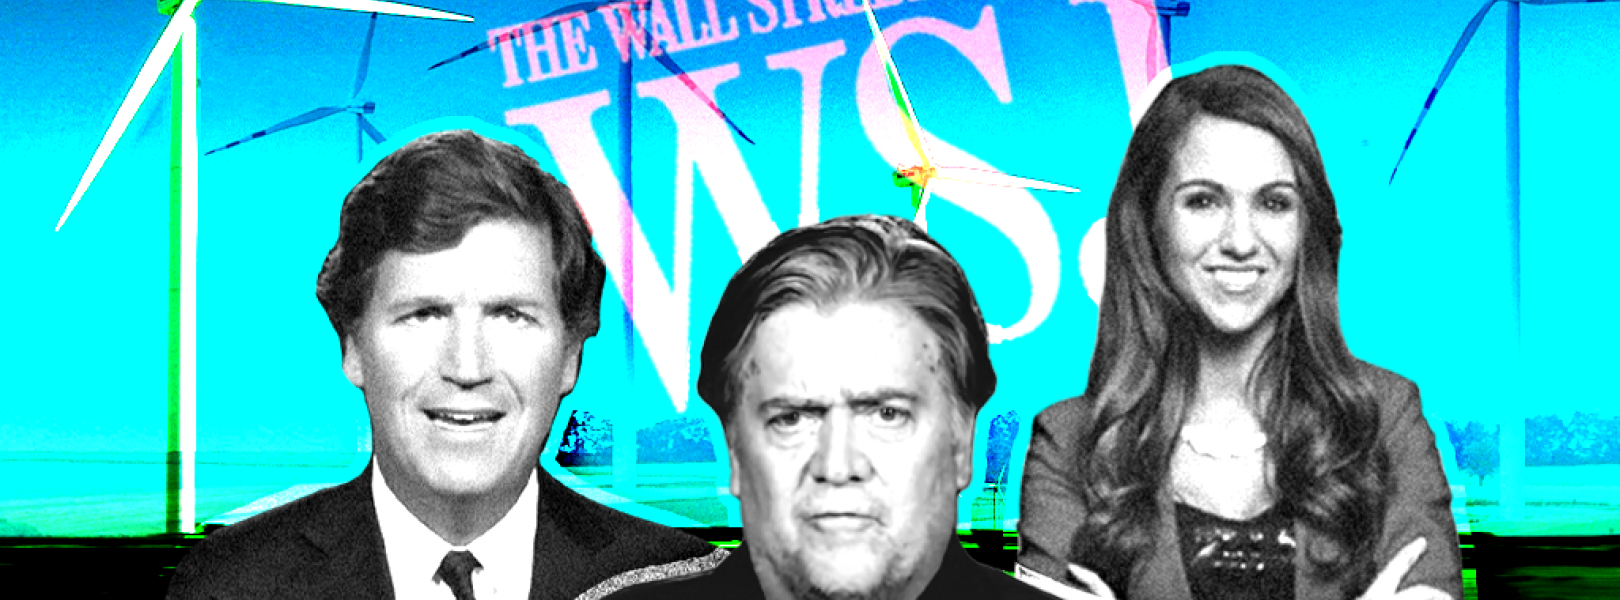 "What do The Wall Street Journal, Tucker Carlson, Rep. Lauren Boebert, Steve Bannon, and an online troll called ""Catturd"" all have in common?"